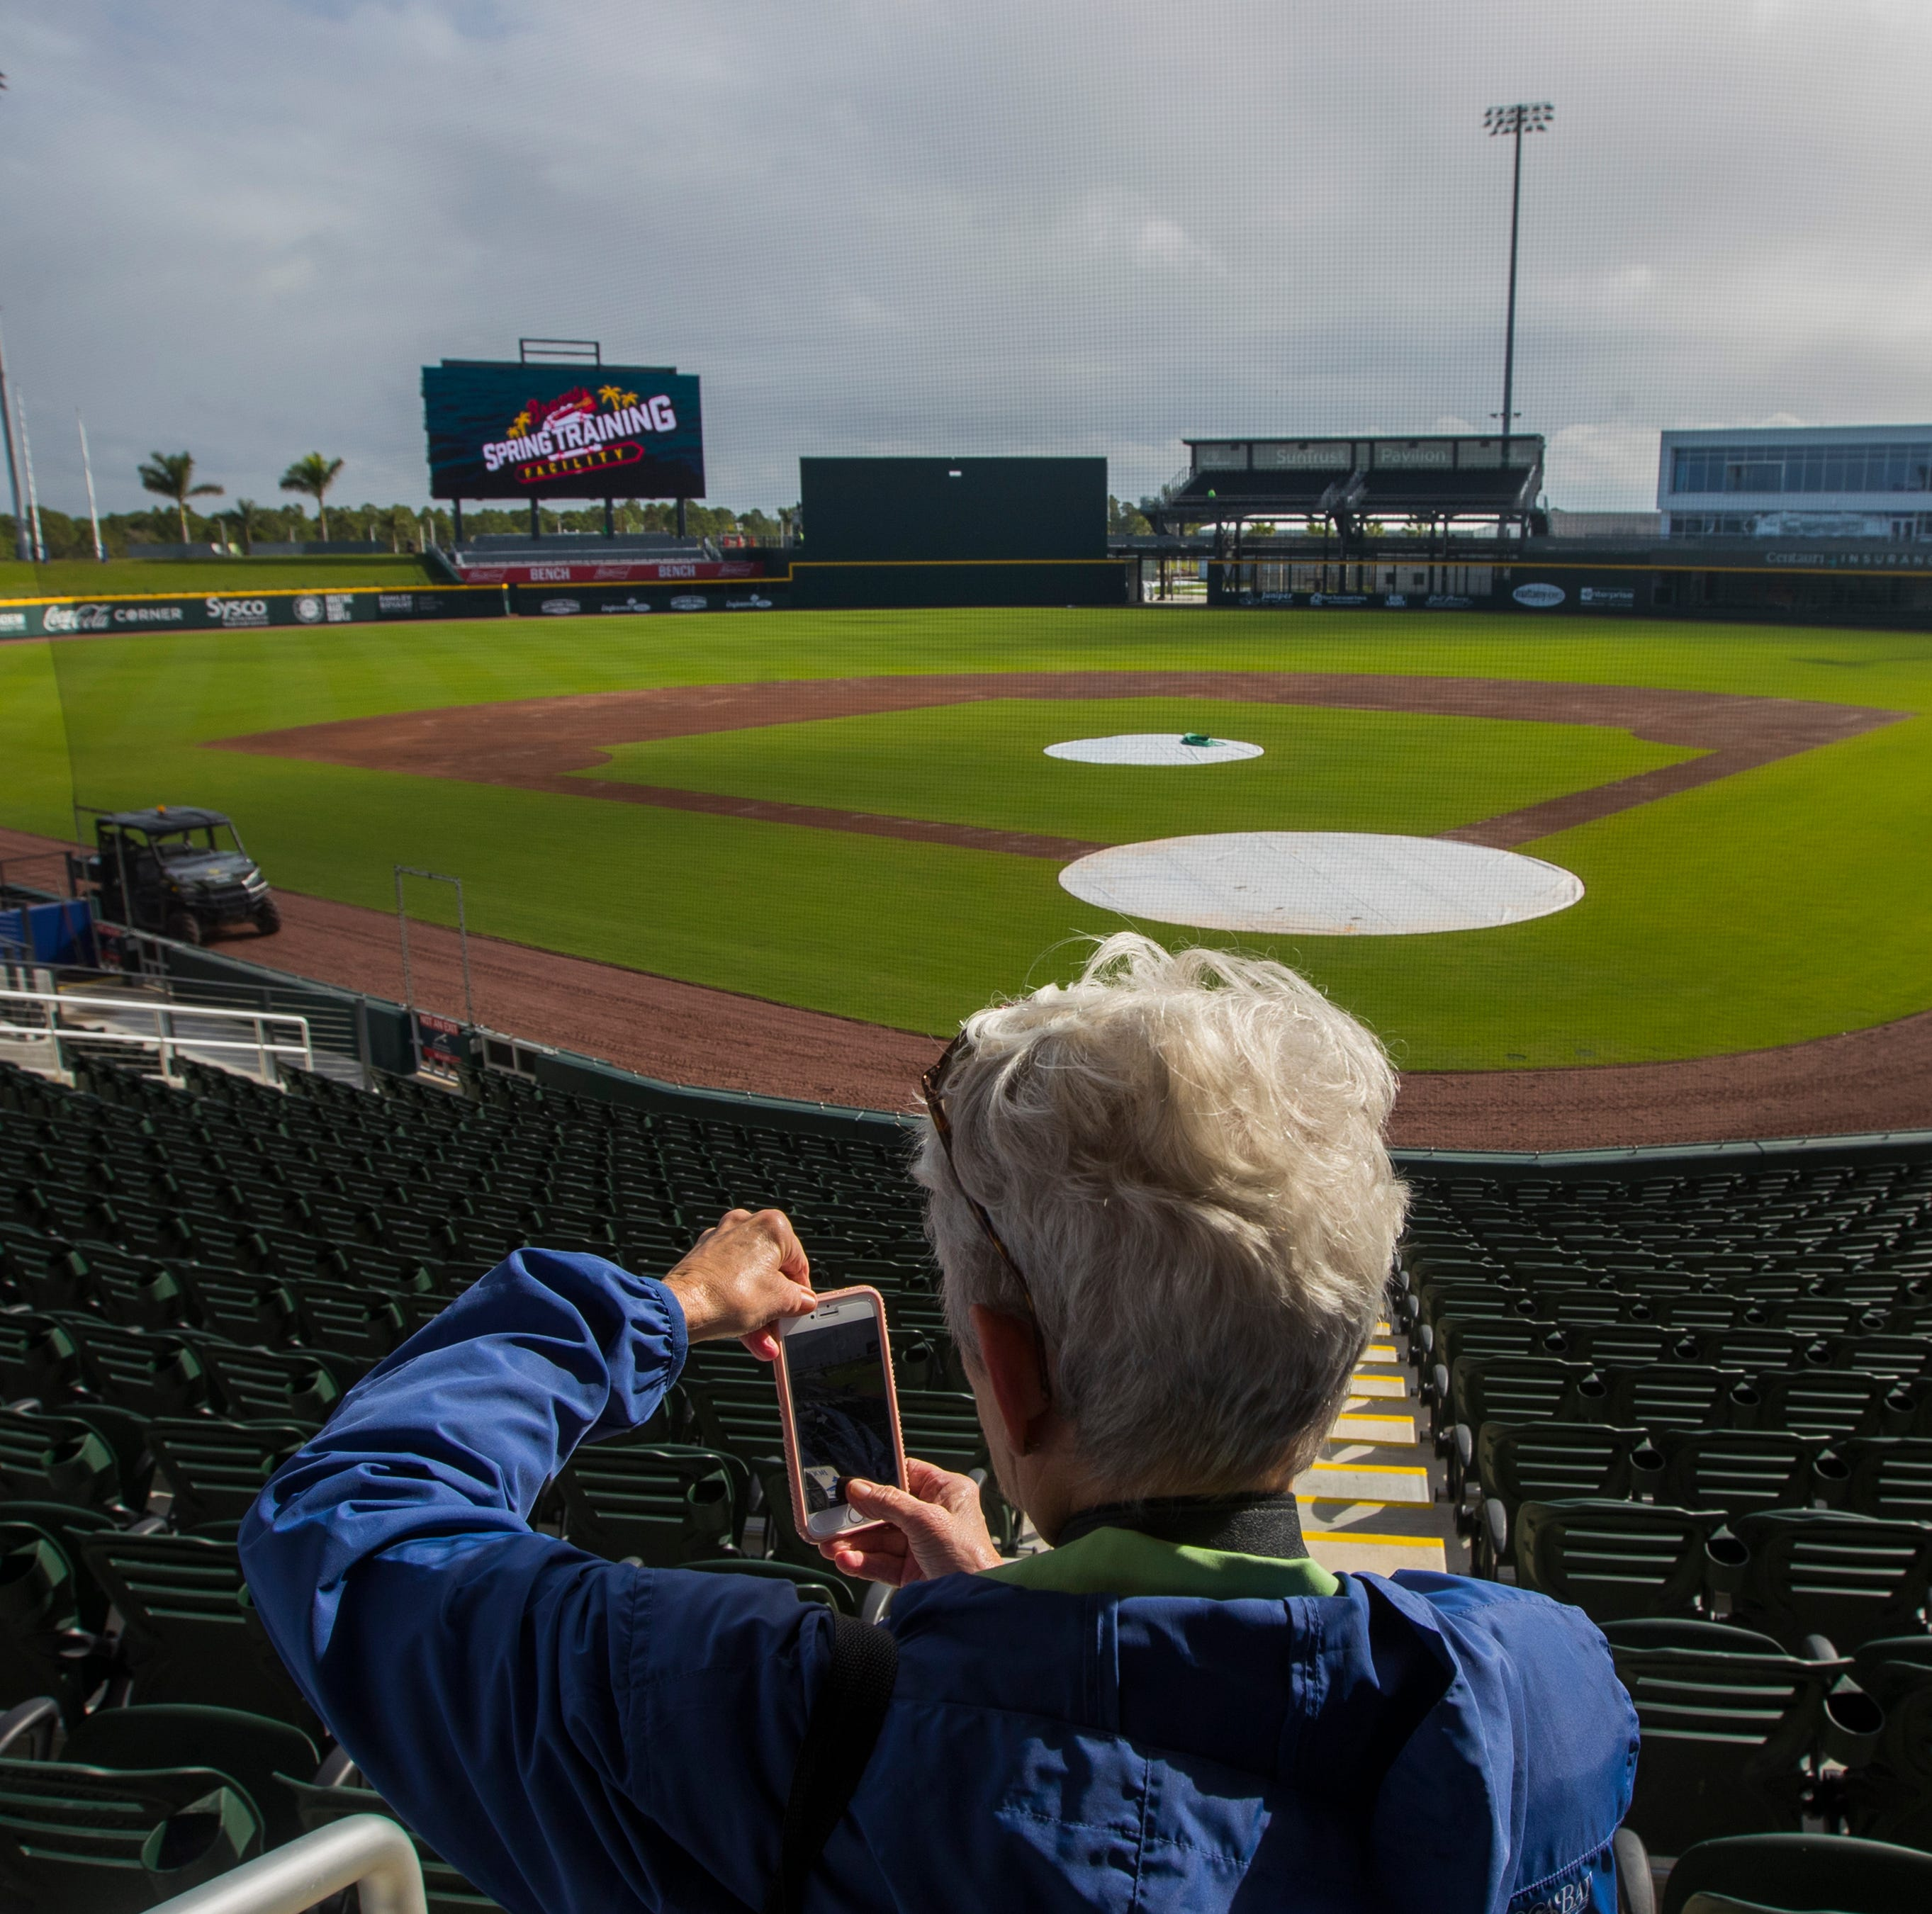 Atlanta Braves unveil new spring training stadium in North Port